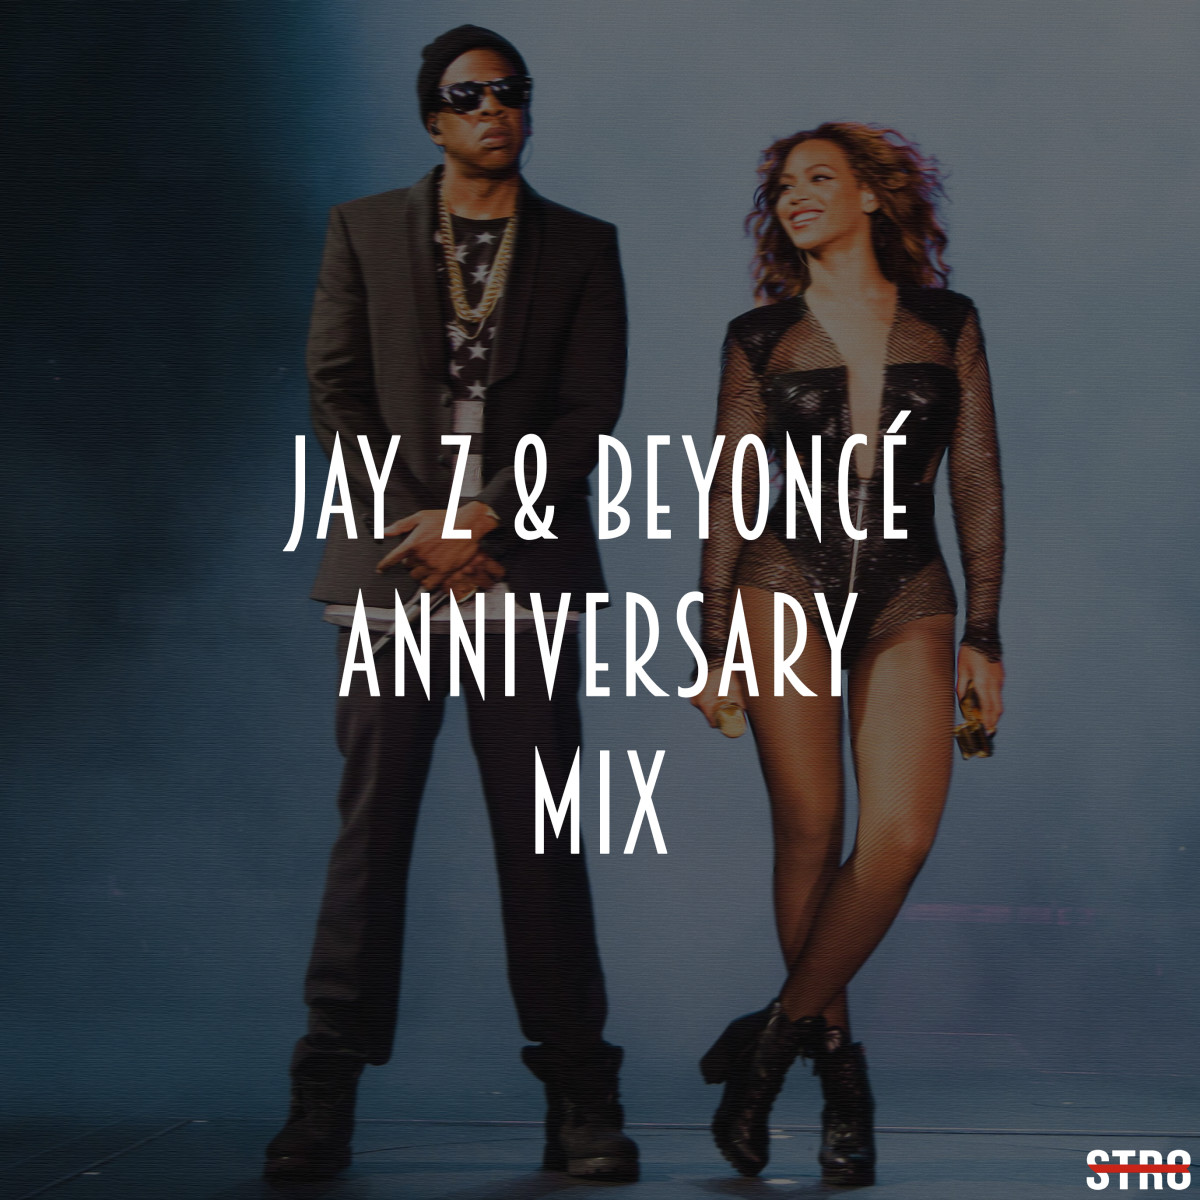 Beyonce and Jay Z anninversary